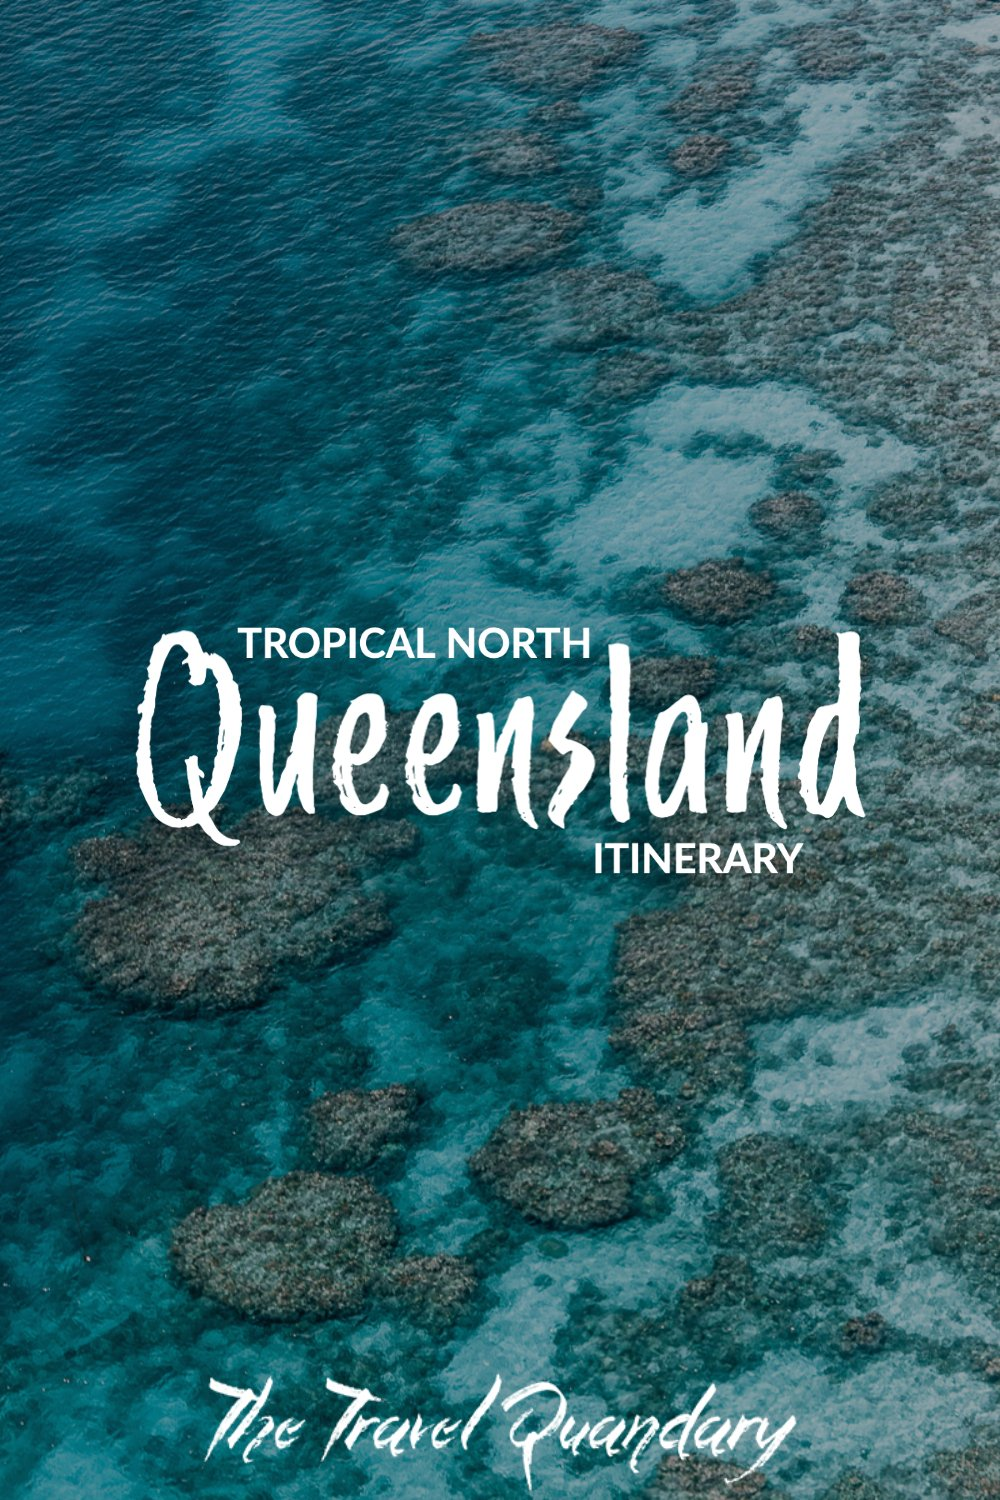 Pin Photo | 9 Day Tropical North Queensland Itinerary